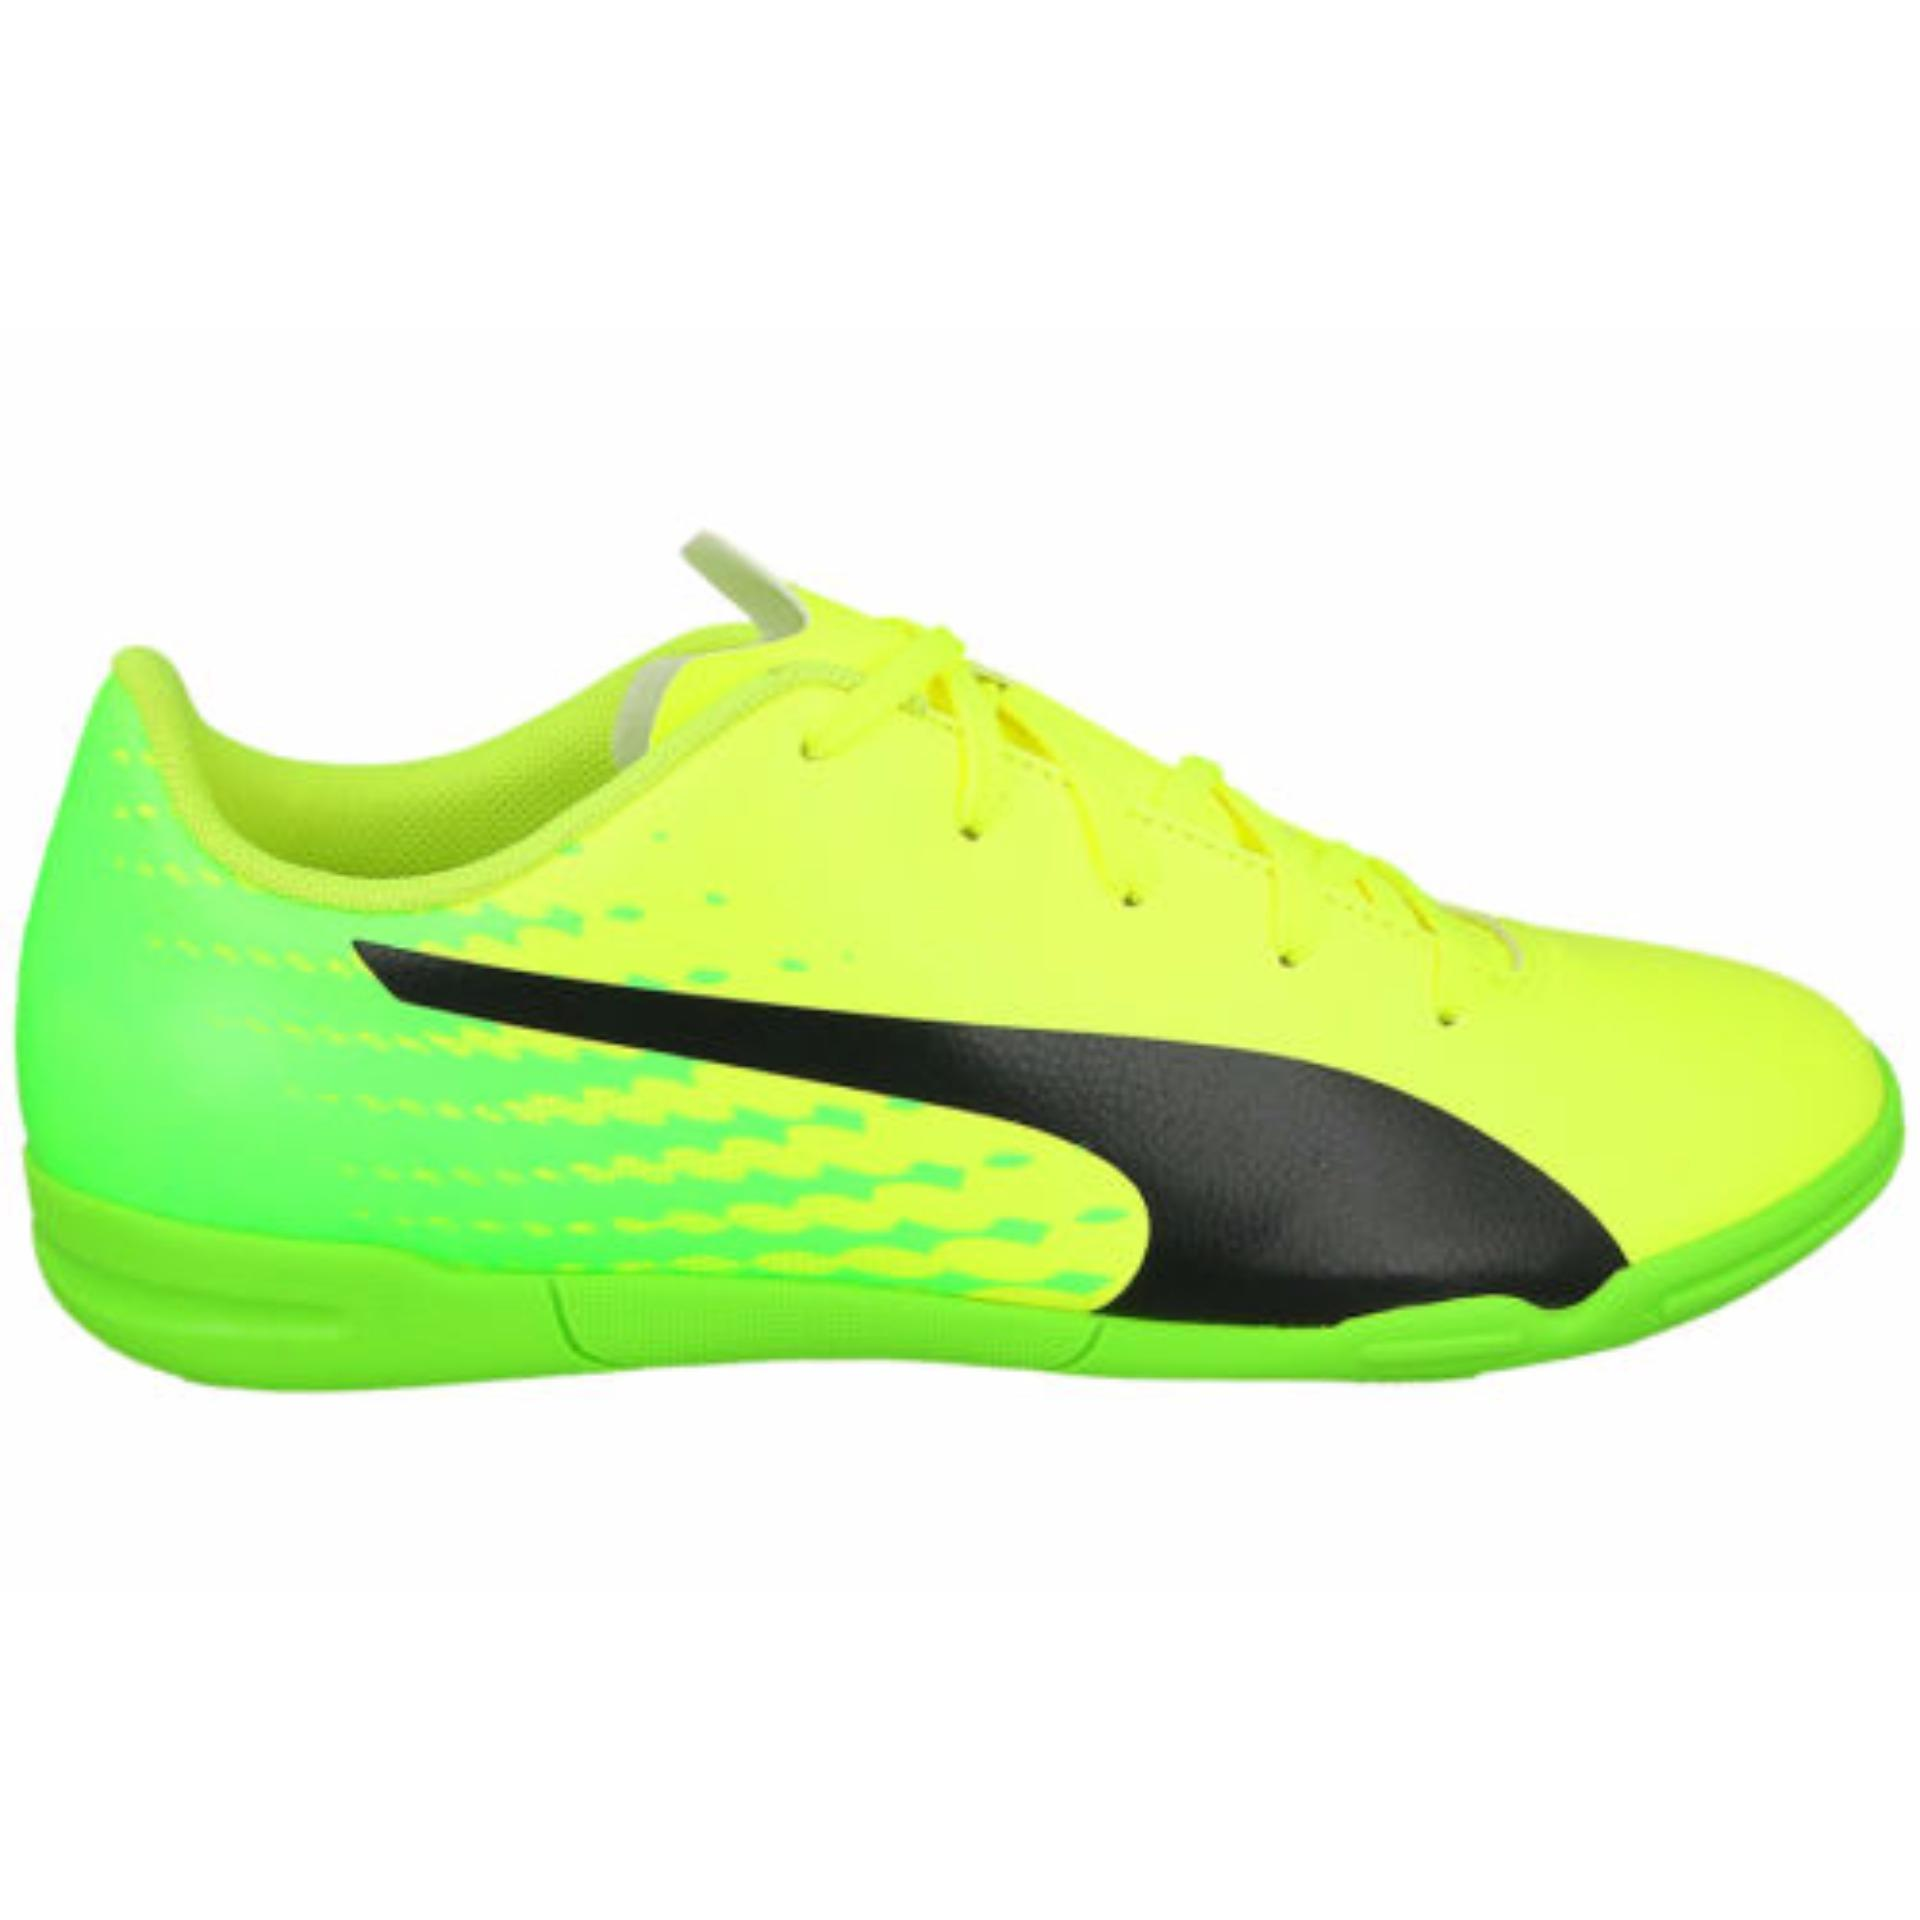 Jual Puma Evospeed 17 5 It Sepatu Futsal Yellow Black Green 104027 01 Online